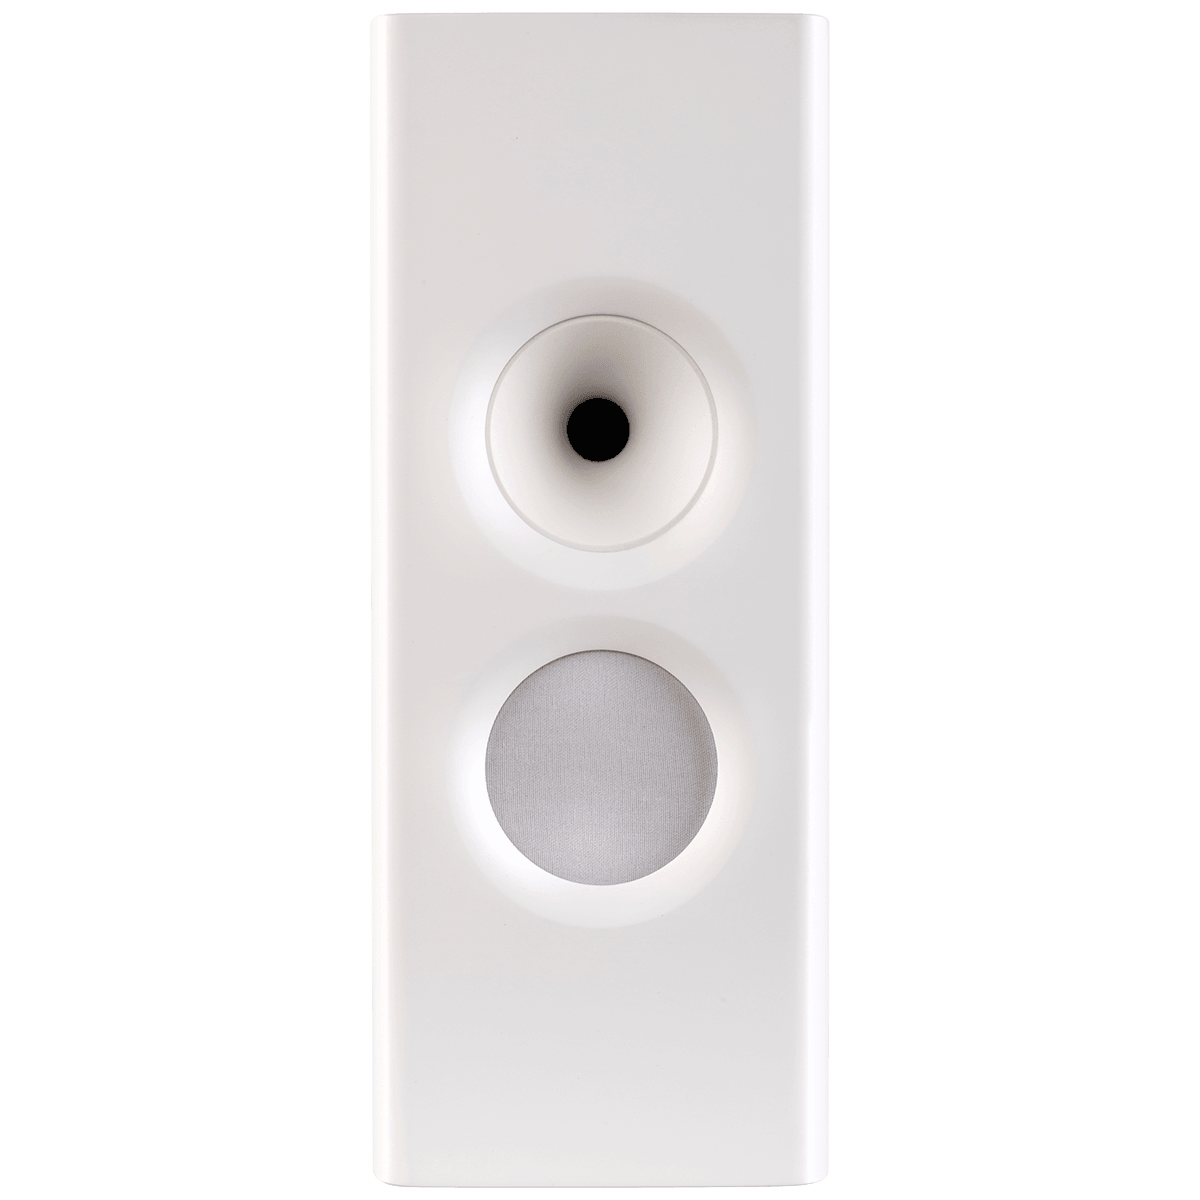 Procella P5V white front view without cover 1200×1200